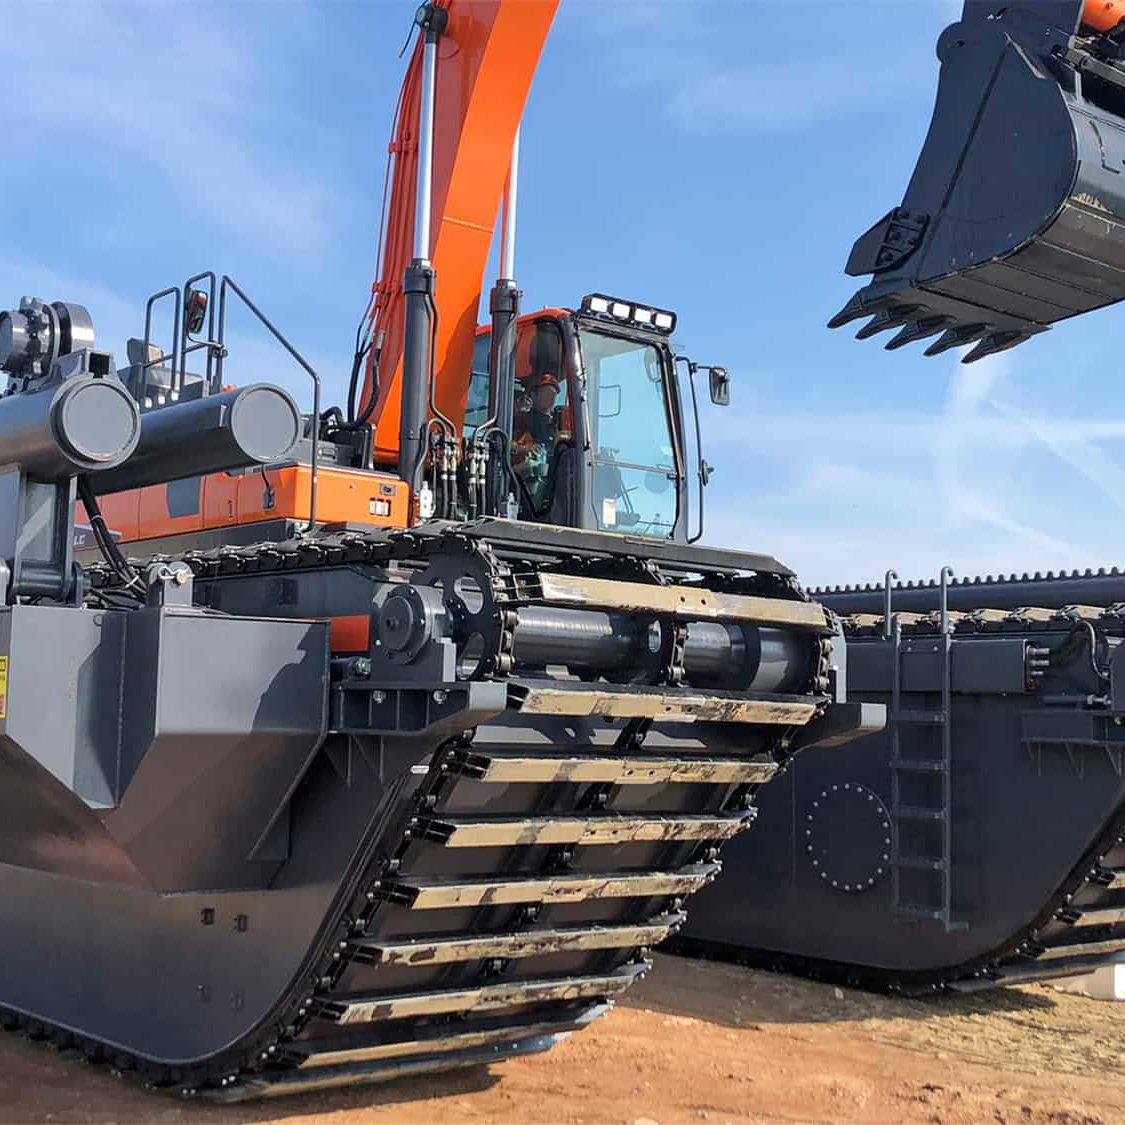 Bell-amphibious-excavator-undercarriage